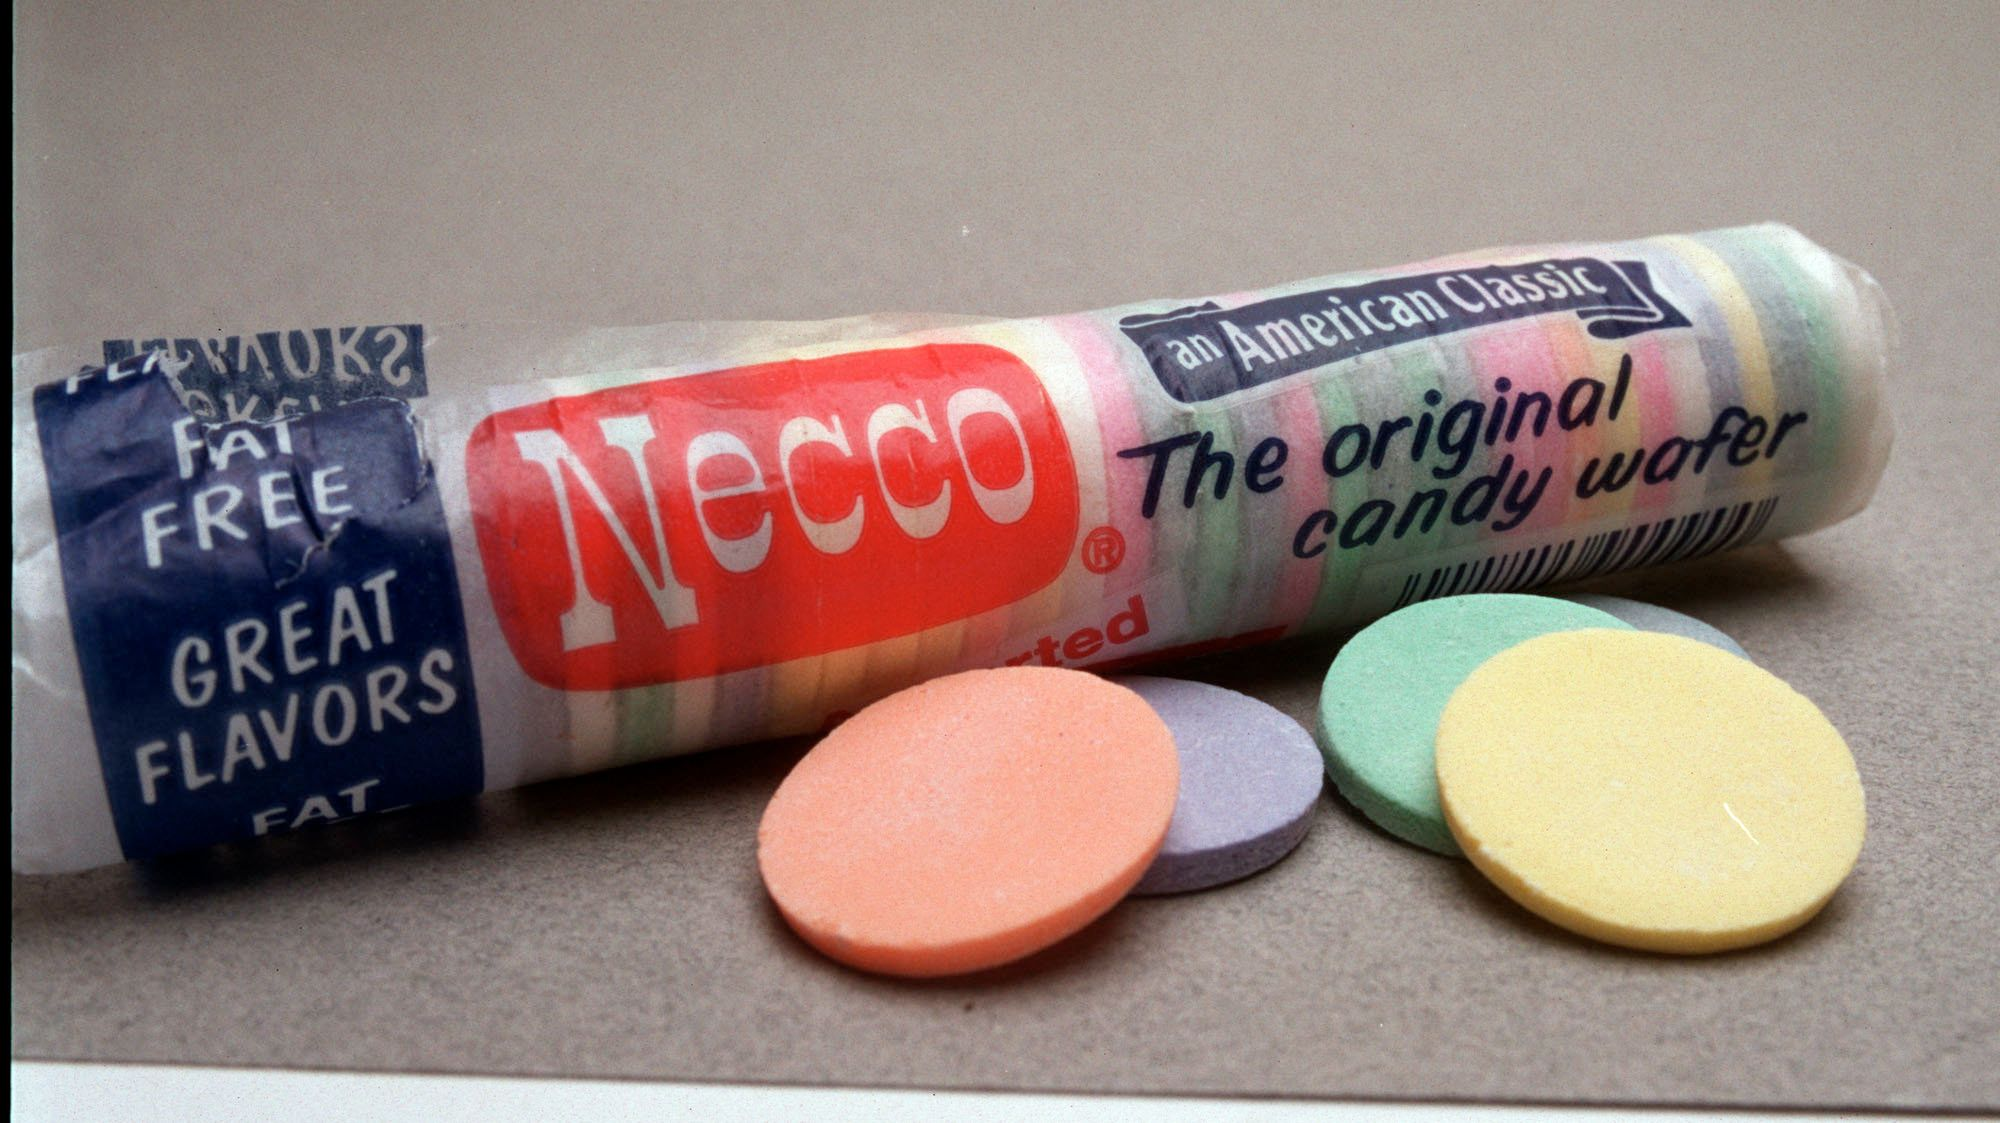 Necco Wafers, sporting bright pastel colors and retro packaging,date back to 1847.